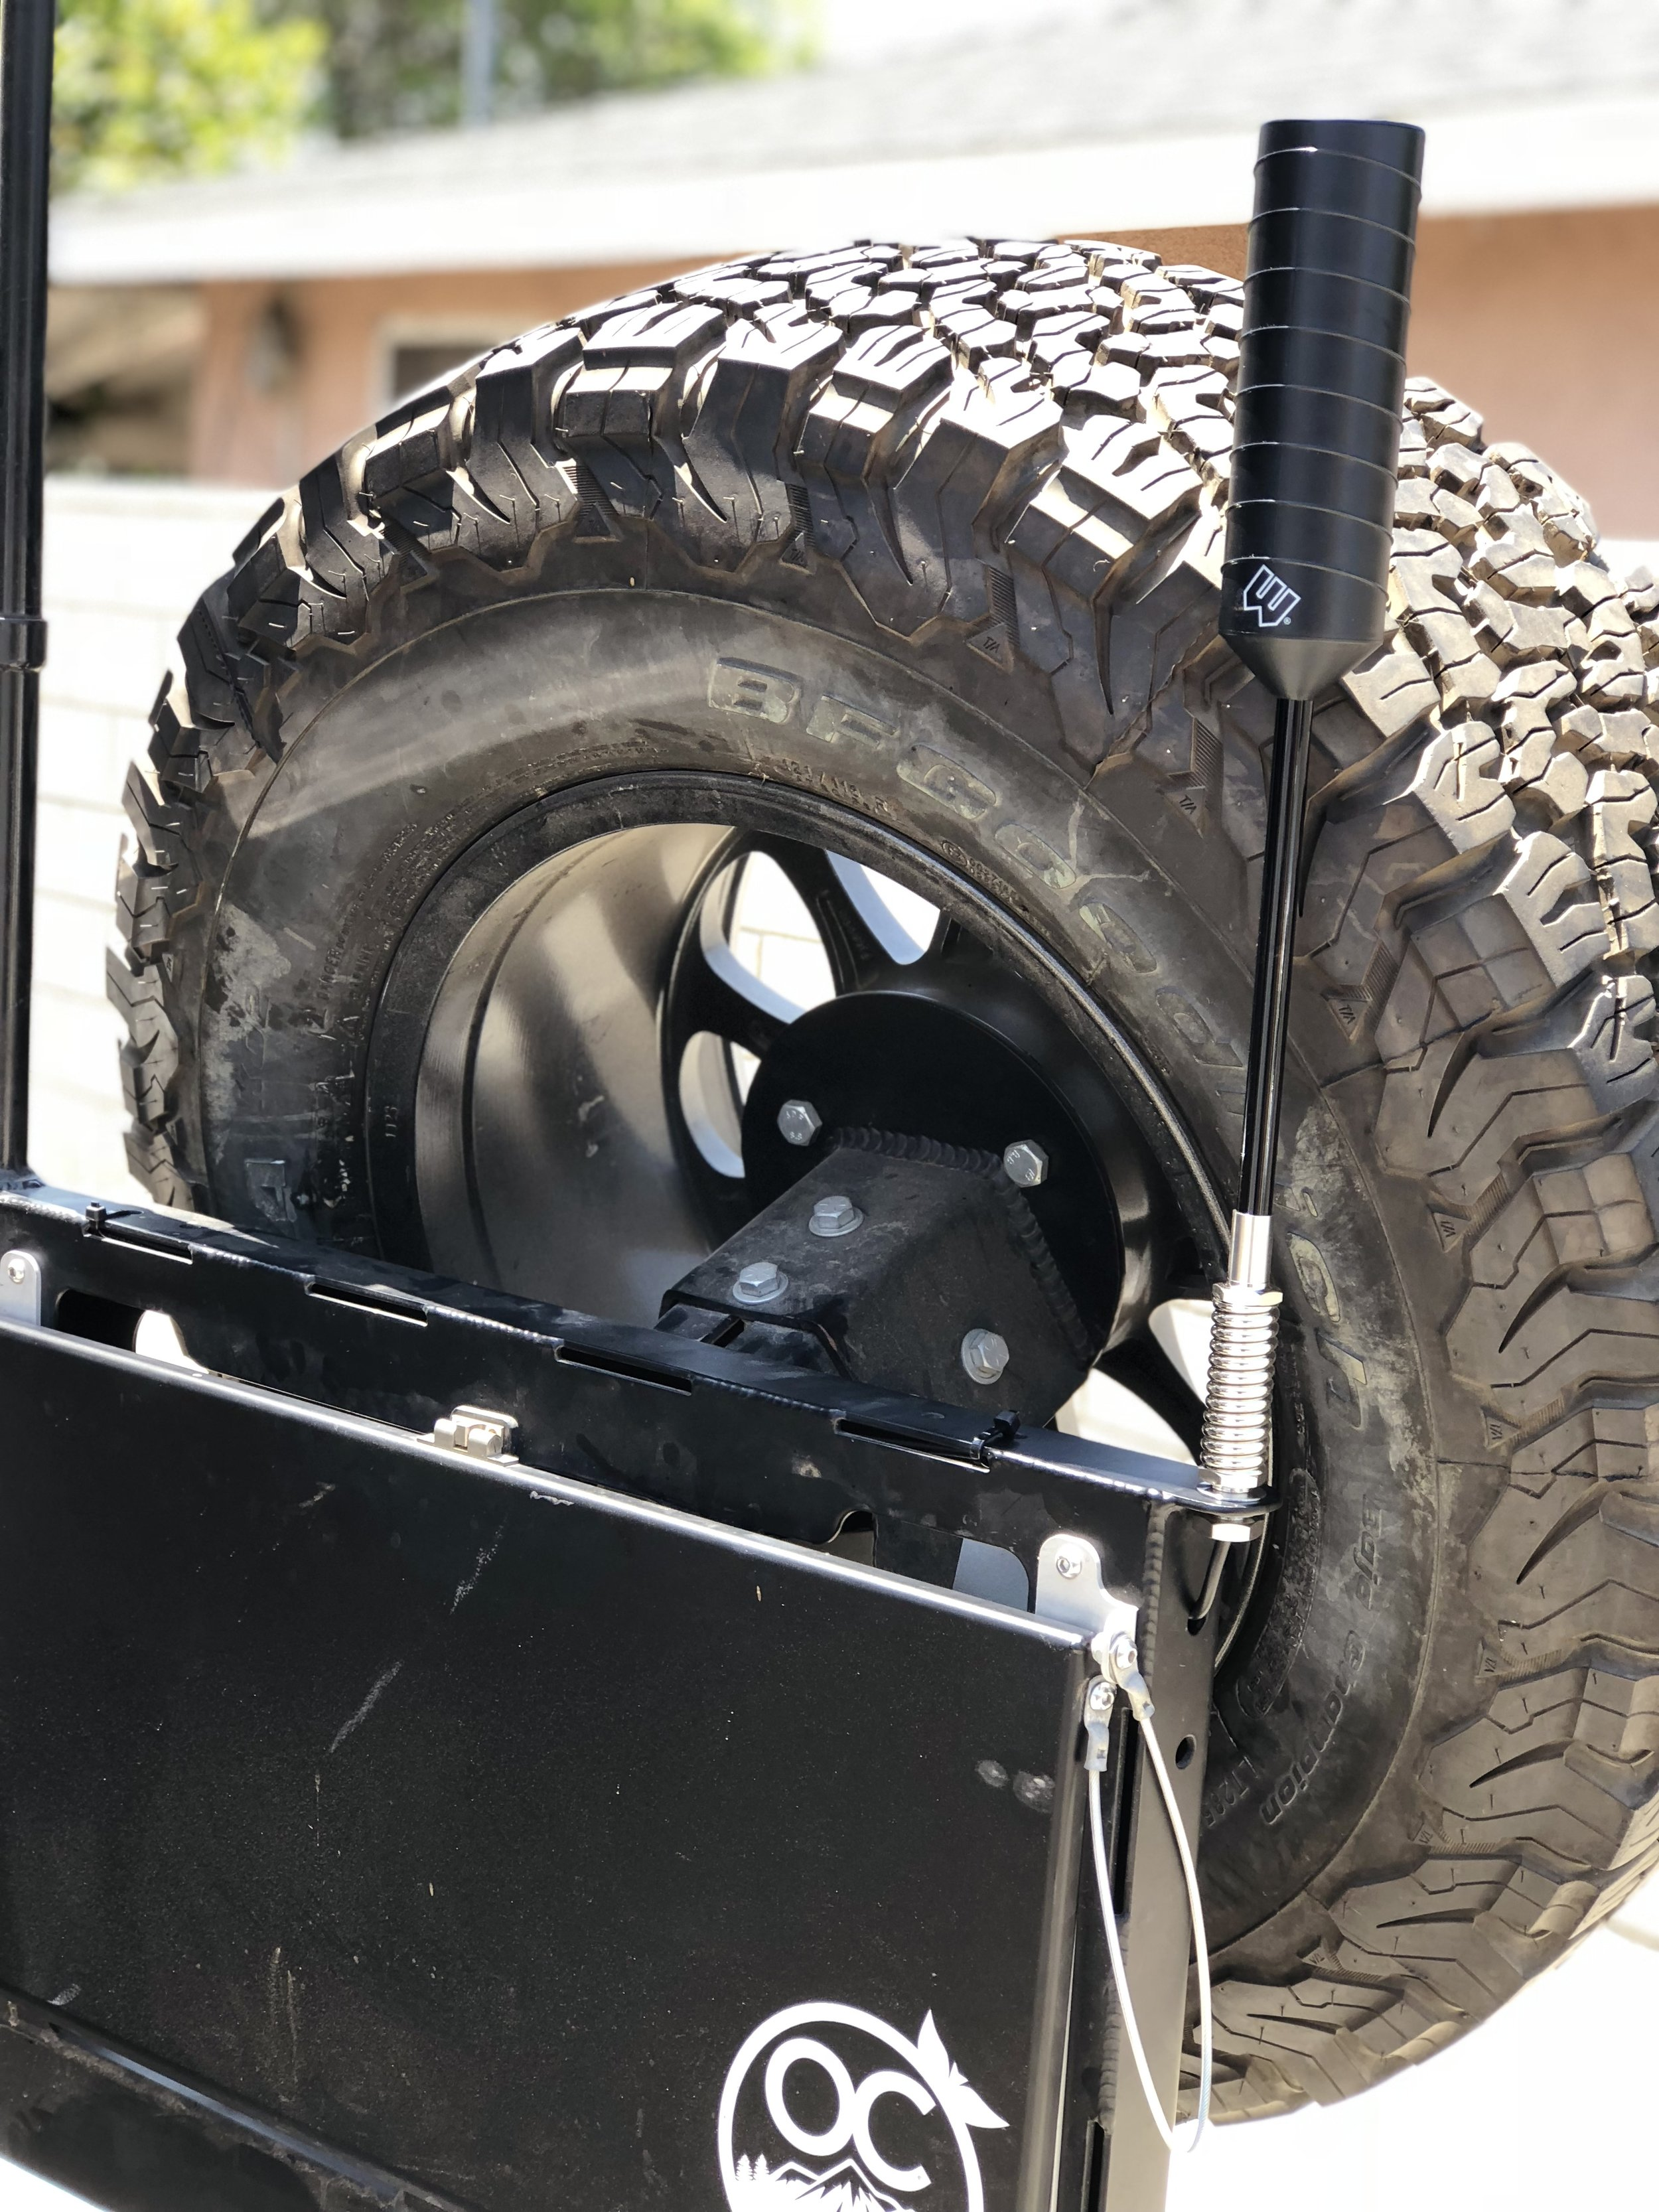 In this photo we have the outside antenna mounted on the CBI bumper on the rear, this was a clean spot that didnt stick out like a sore thumb.